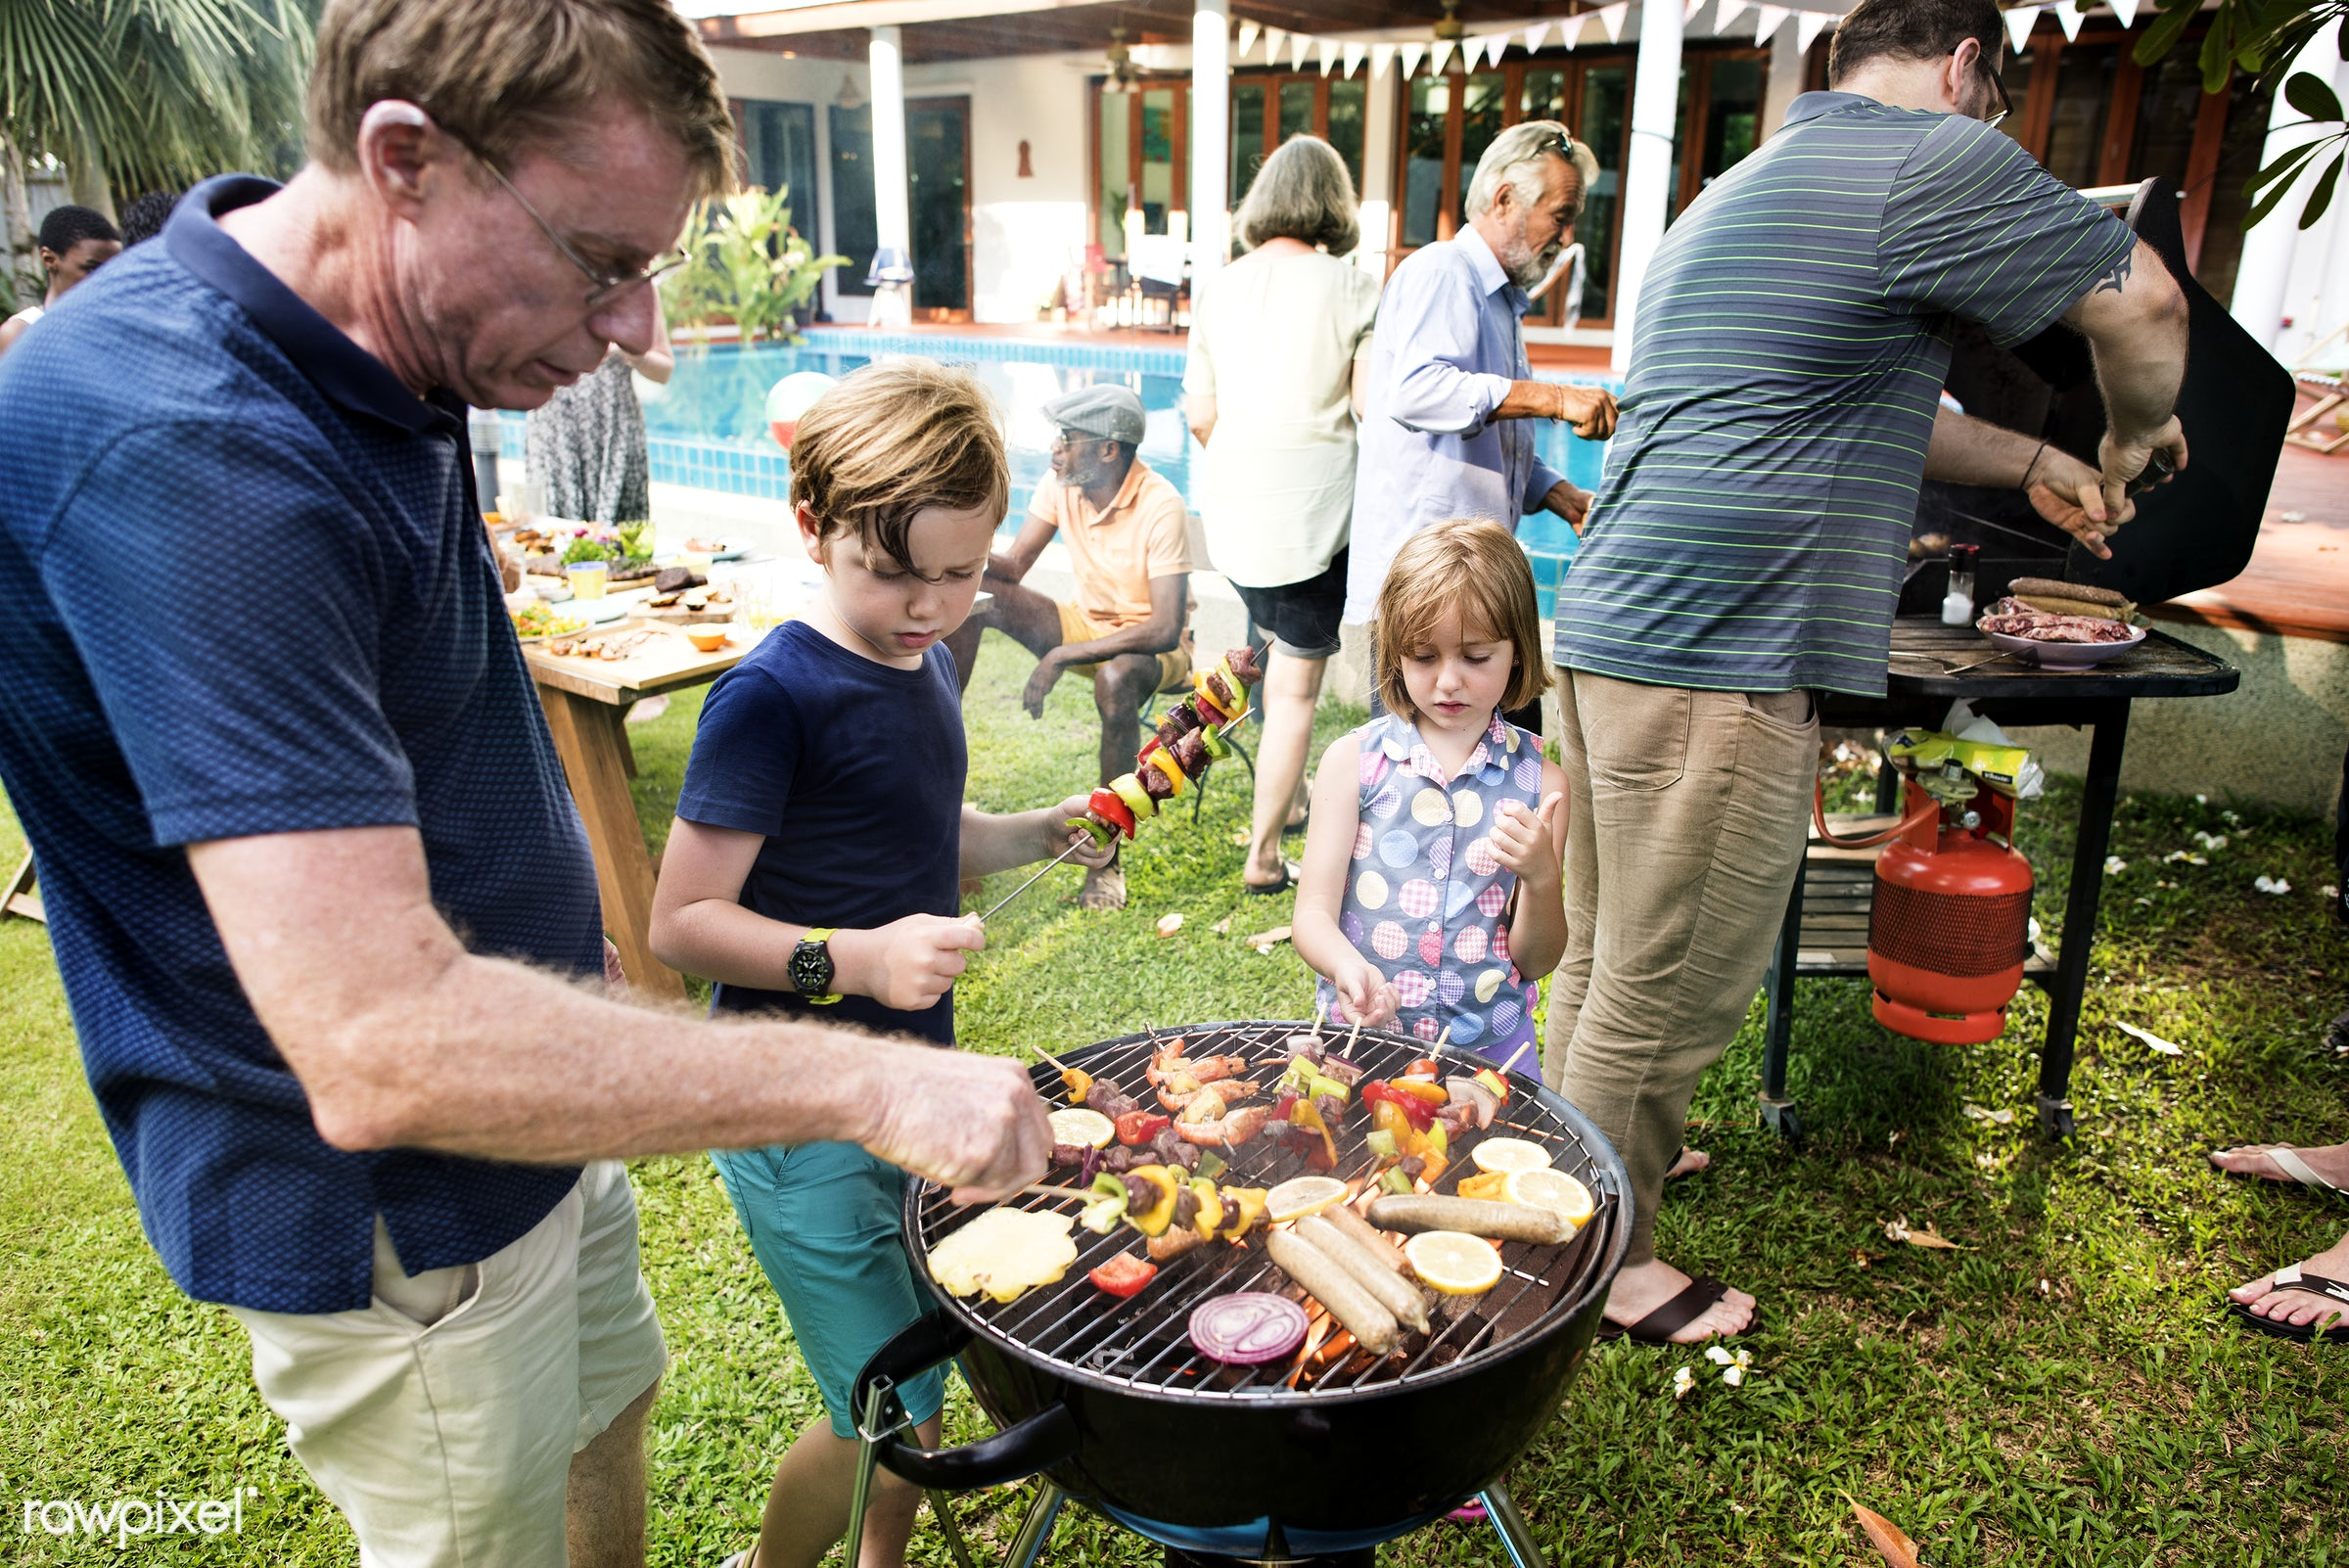 barbecue, backyard, bbq, cheerful, children, cook, cooking, cookout, dad, daughter, diverse, family, father, food, friends,...